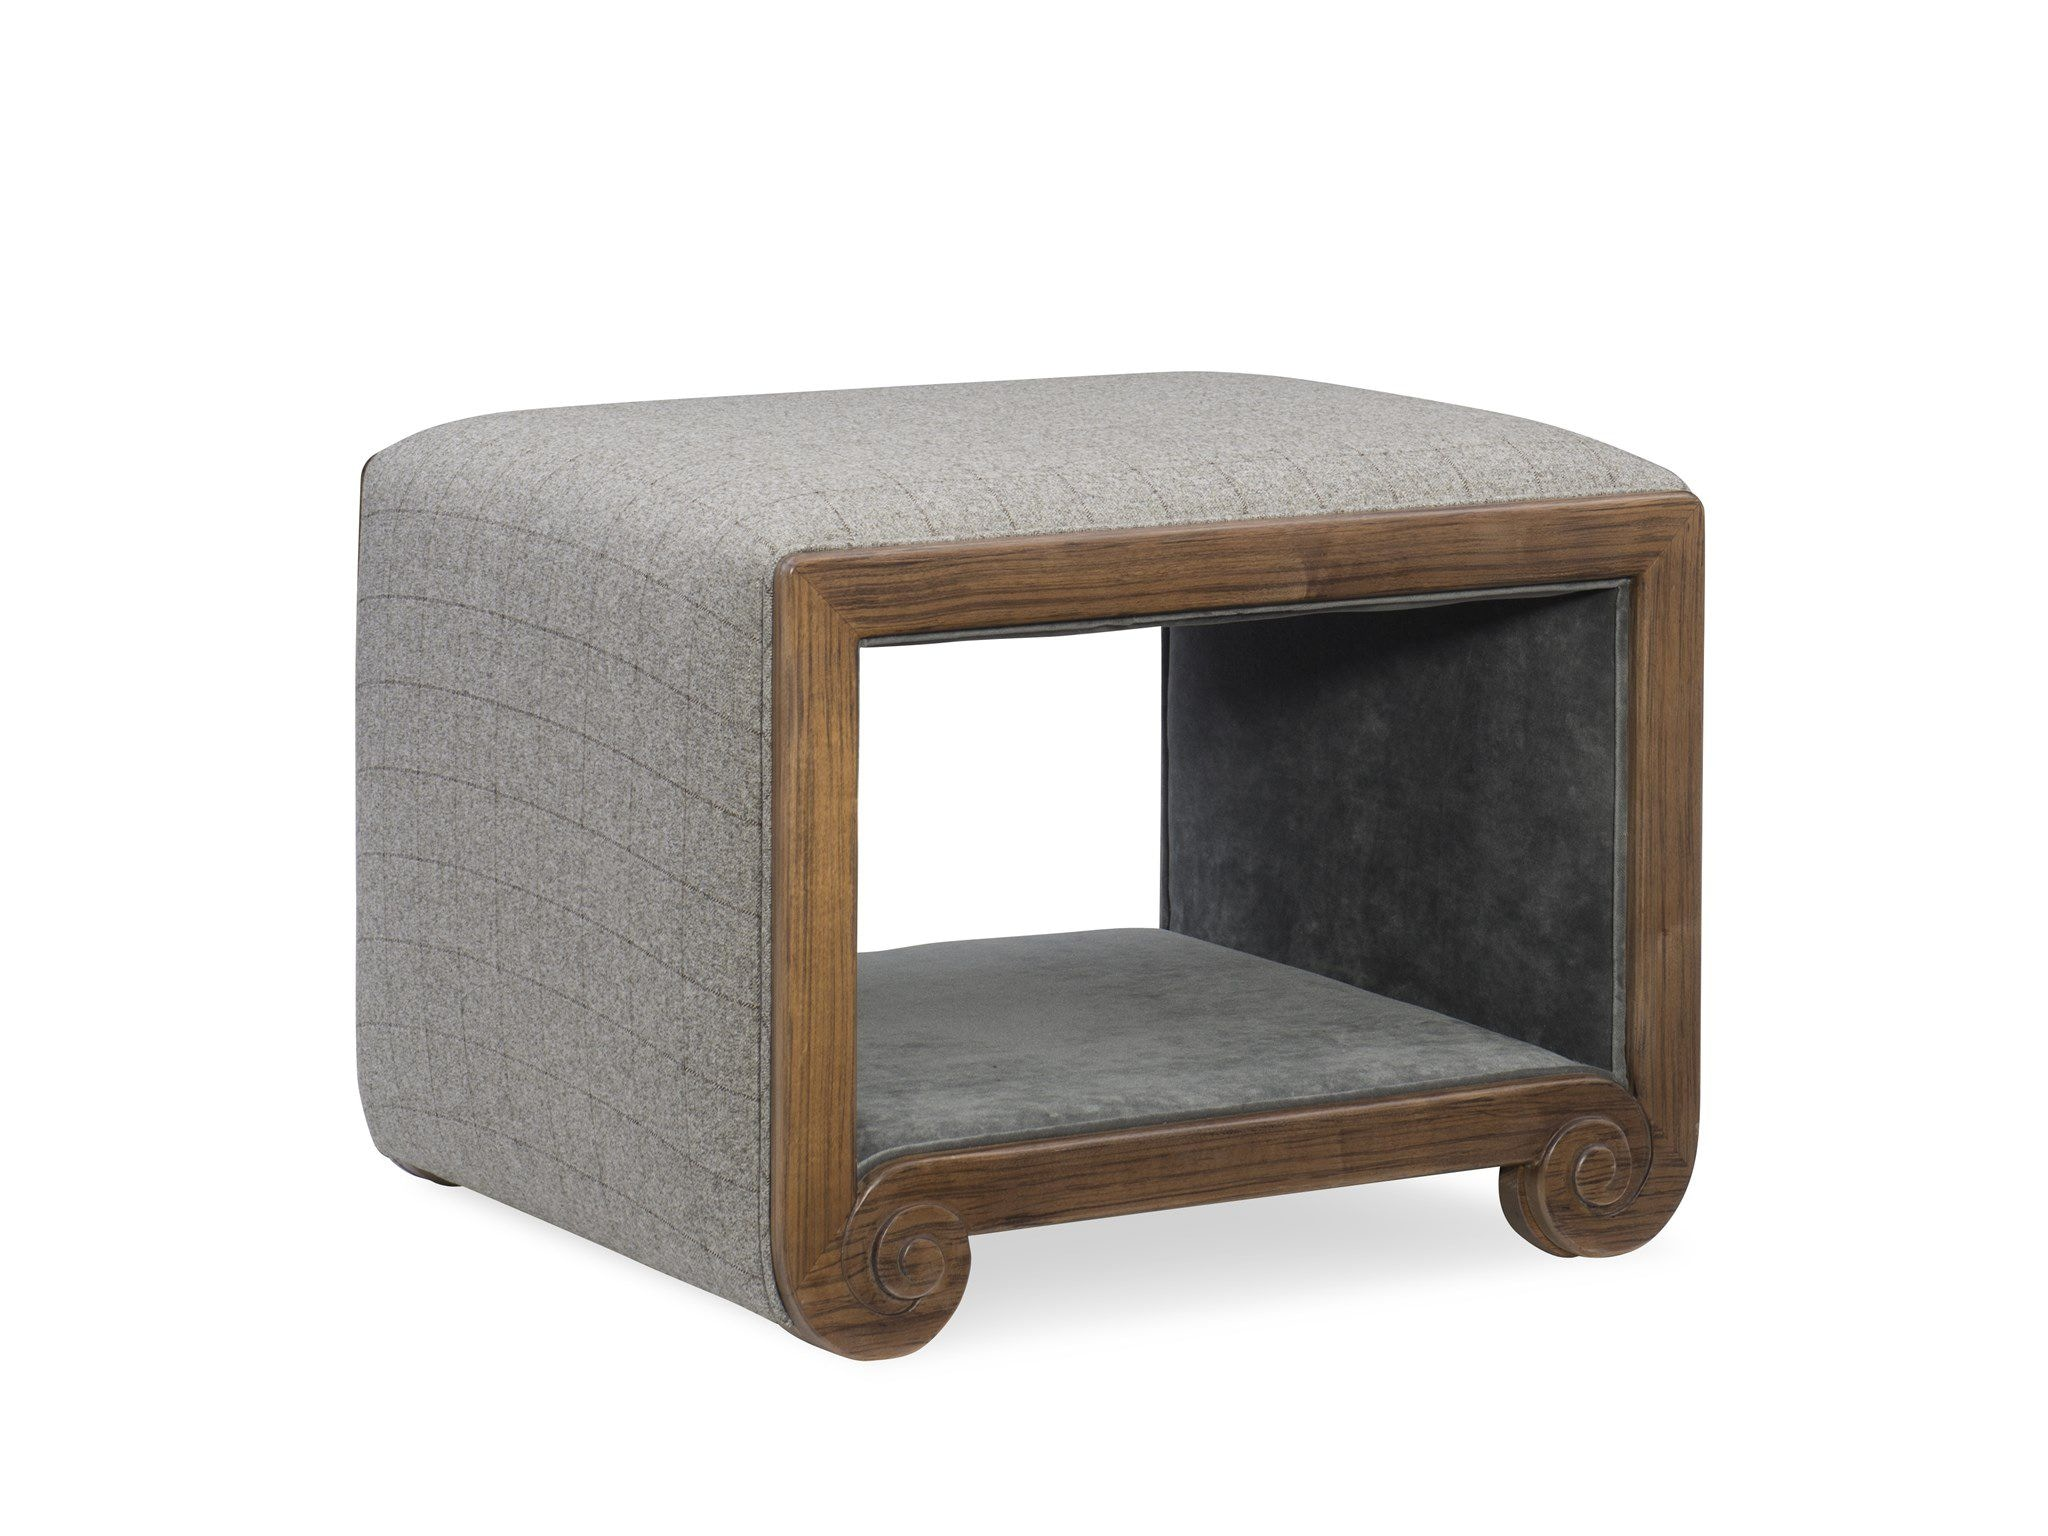 Fine Furniture Design Living Room Leeds Bench 1810 500 At Louis Shanks